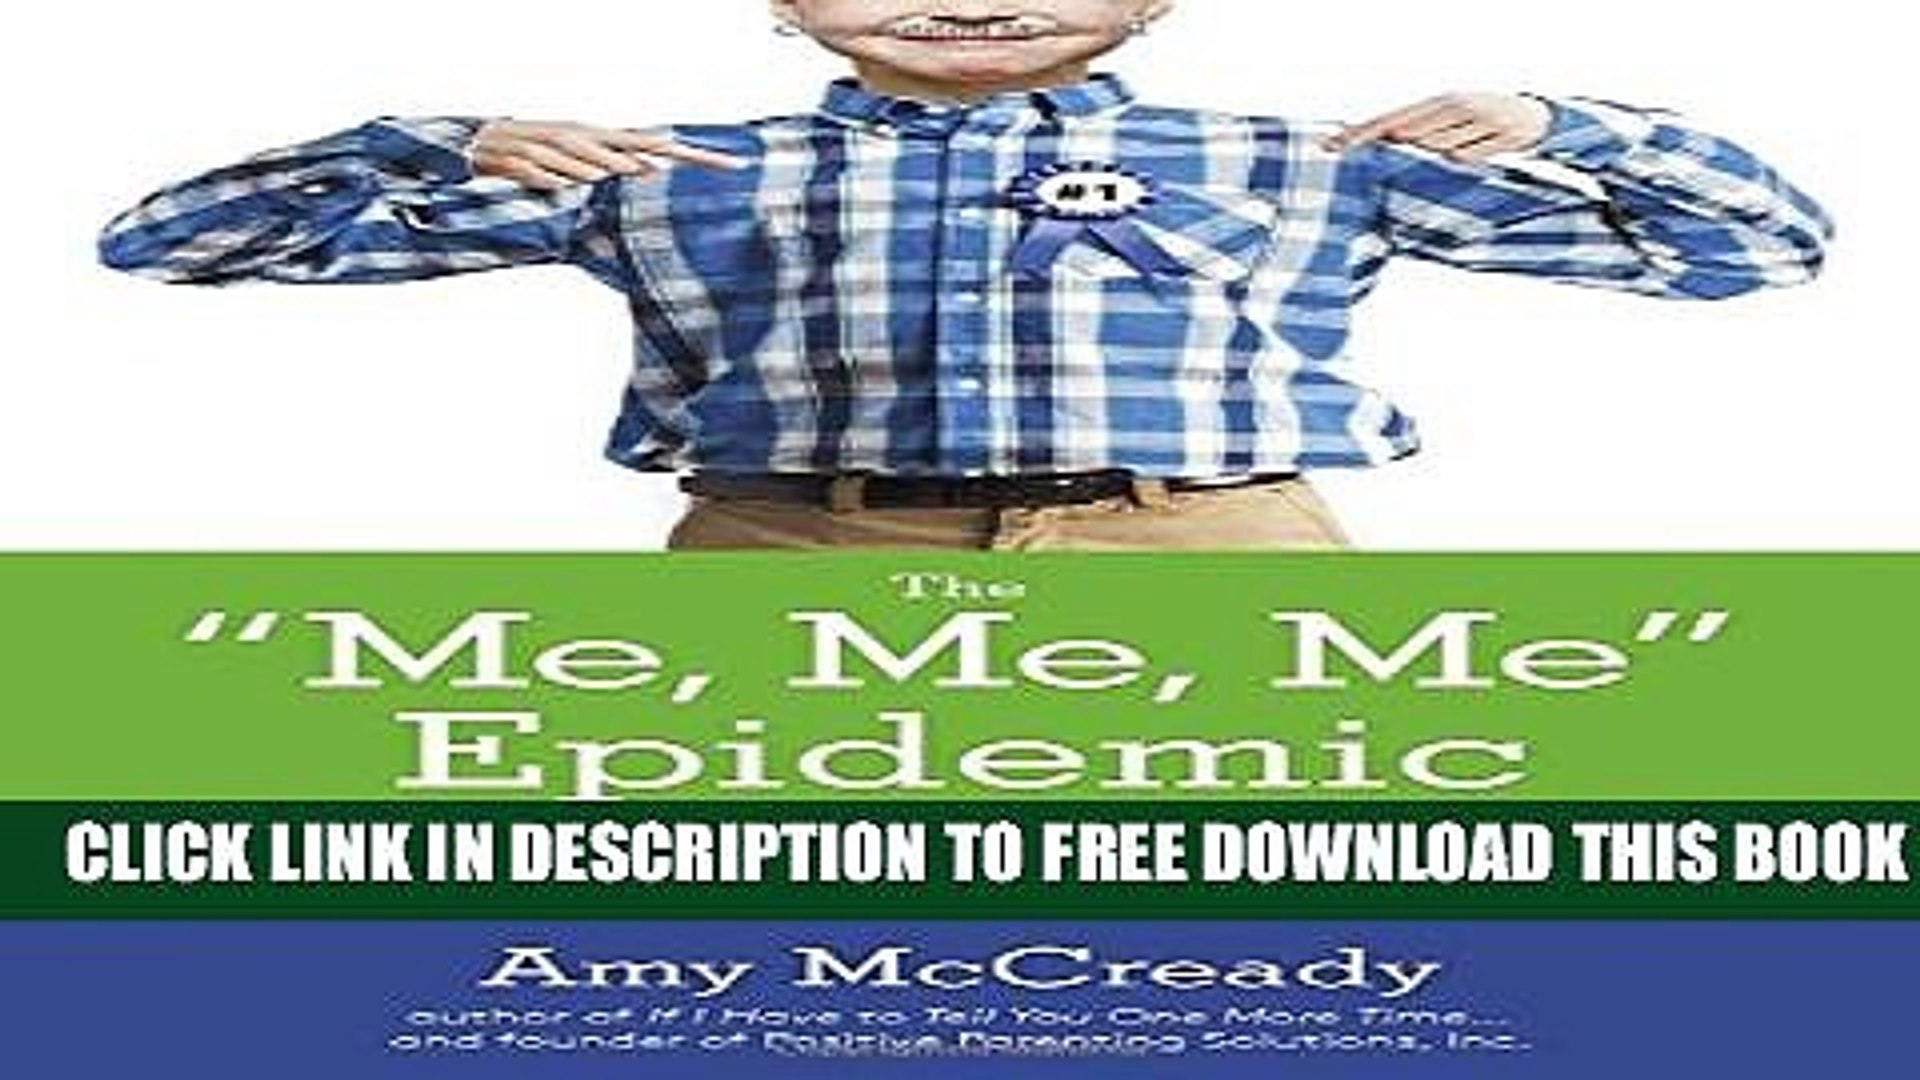 Collection Book The Me, Me, Me Epidemic: A Step-by-Step Guide to Raising Capable, Grateful Kids in